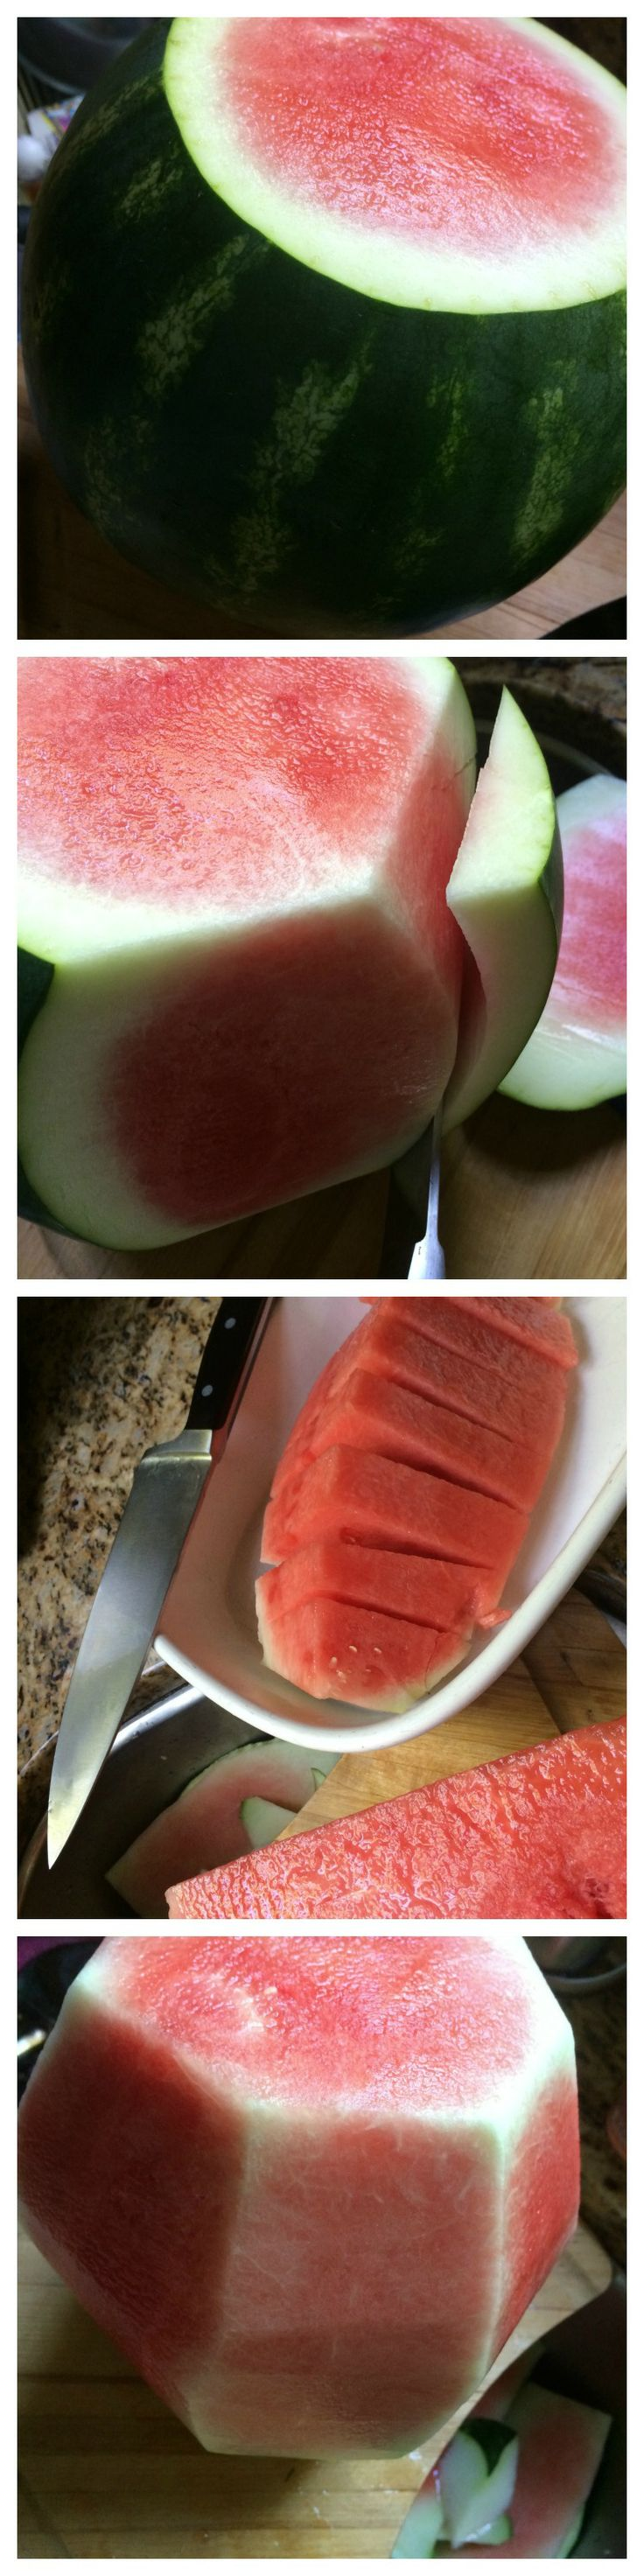 How to cut a watermelon. This tutorial shows the simple way to cut up a watermelon without the rind.